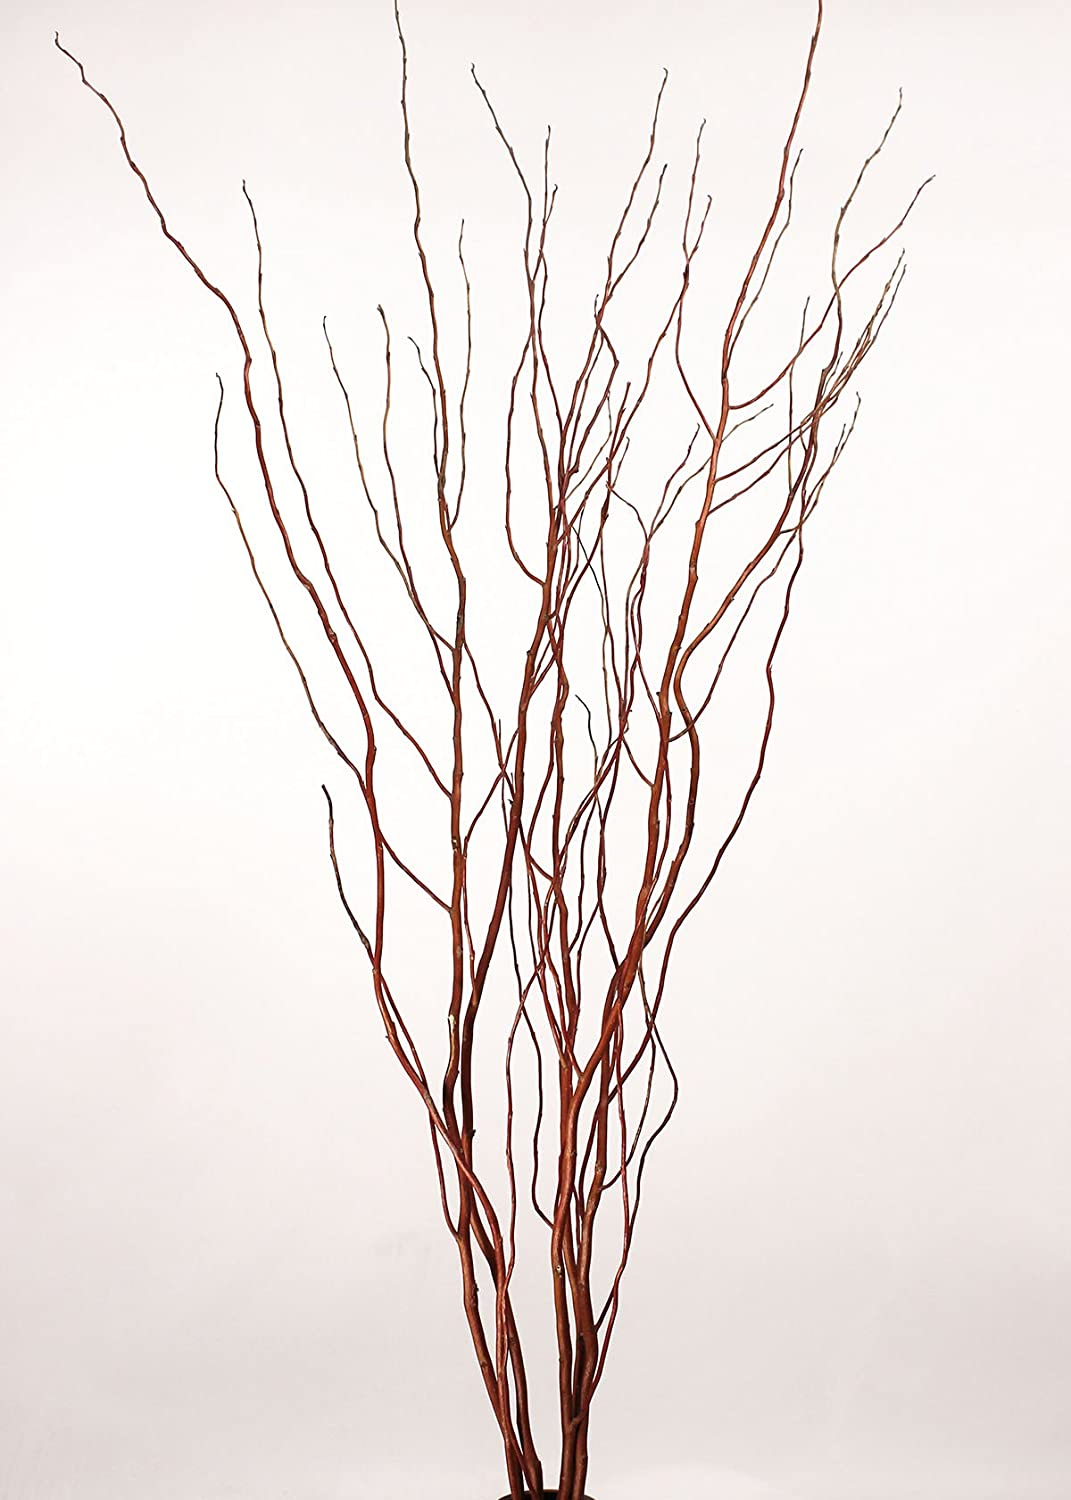 Amazon.com: Green Floral Crafts Curly Willow Branches (Bunch of 8 ...